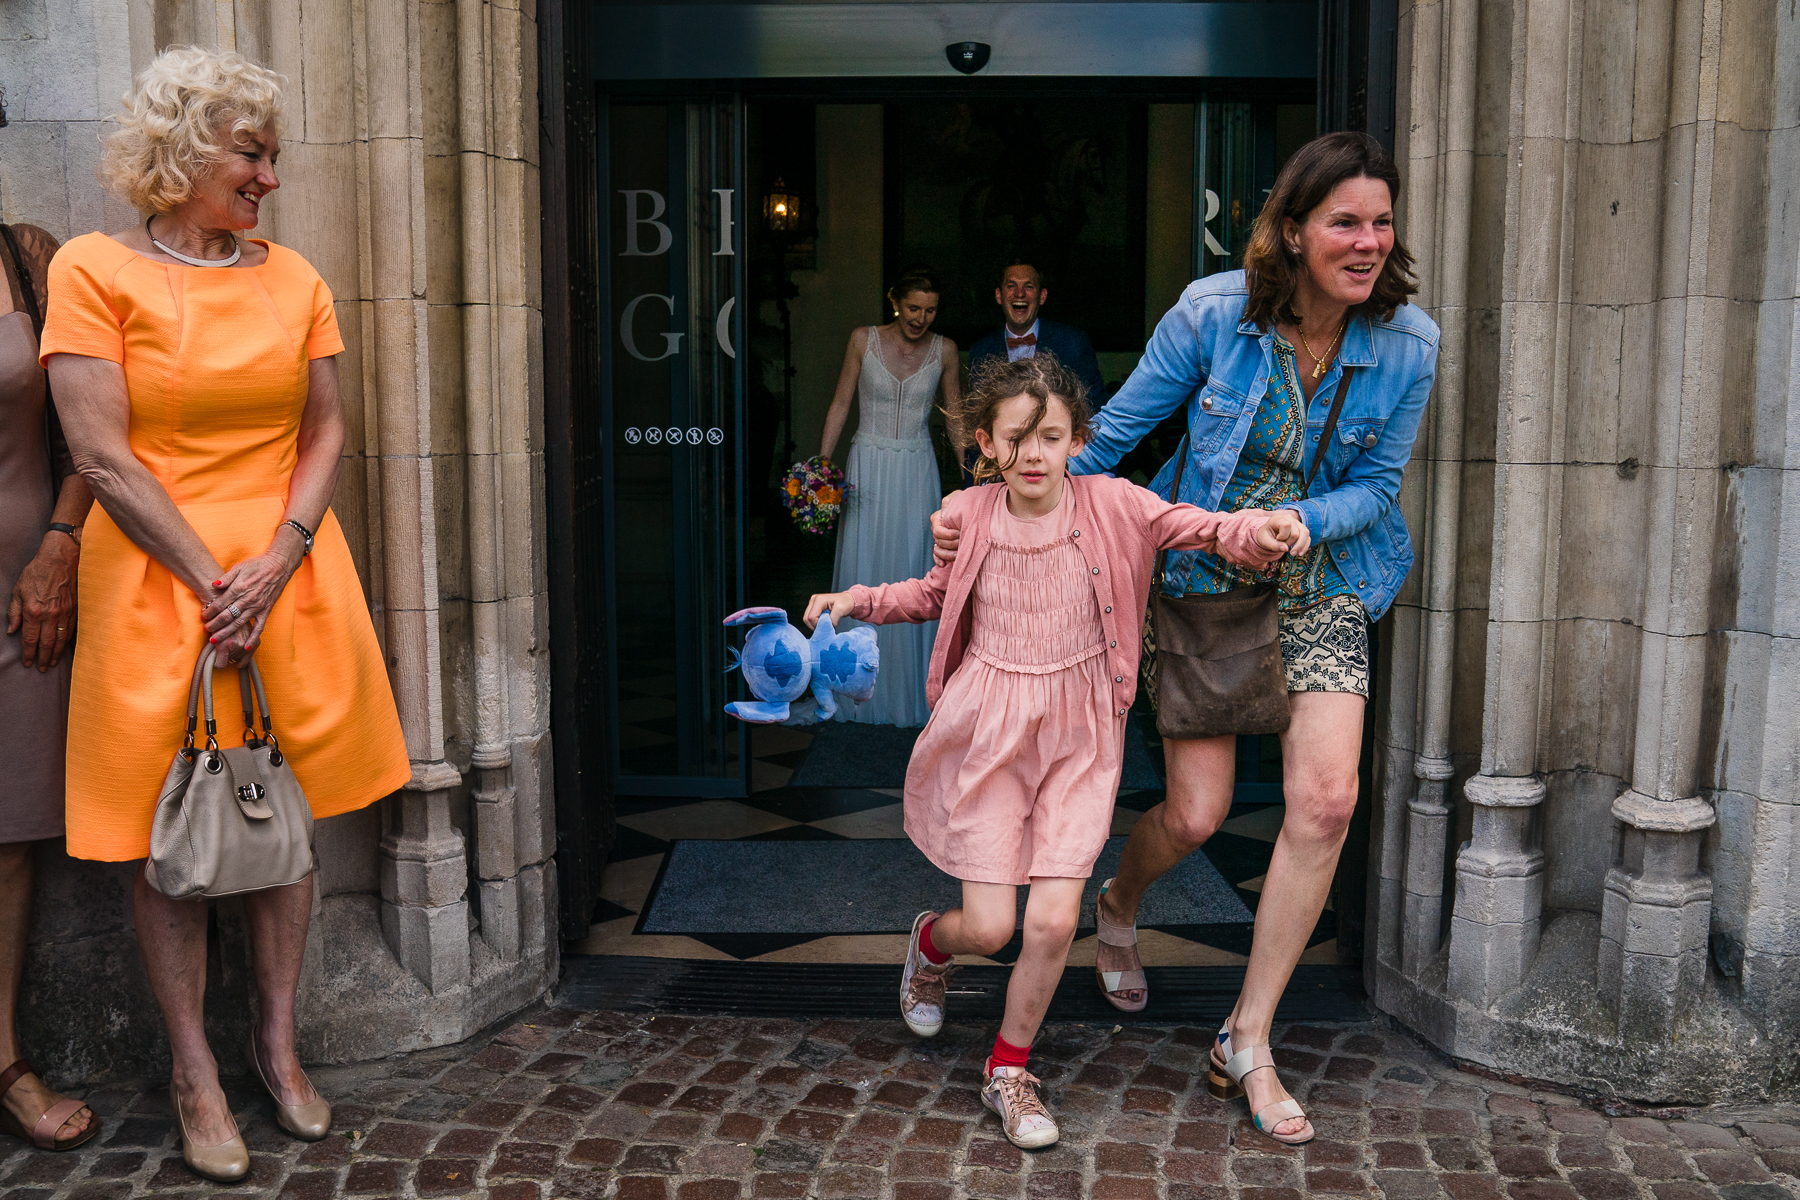 A little girl and her mother run out of the Town Hall in this wedding photo